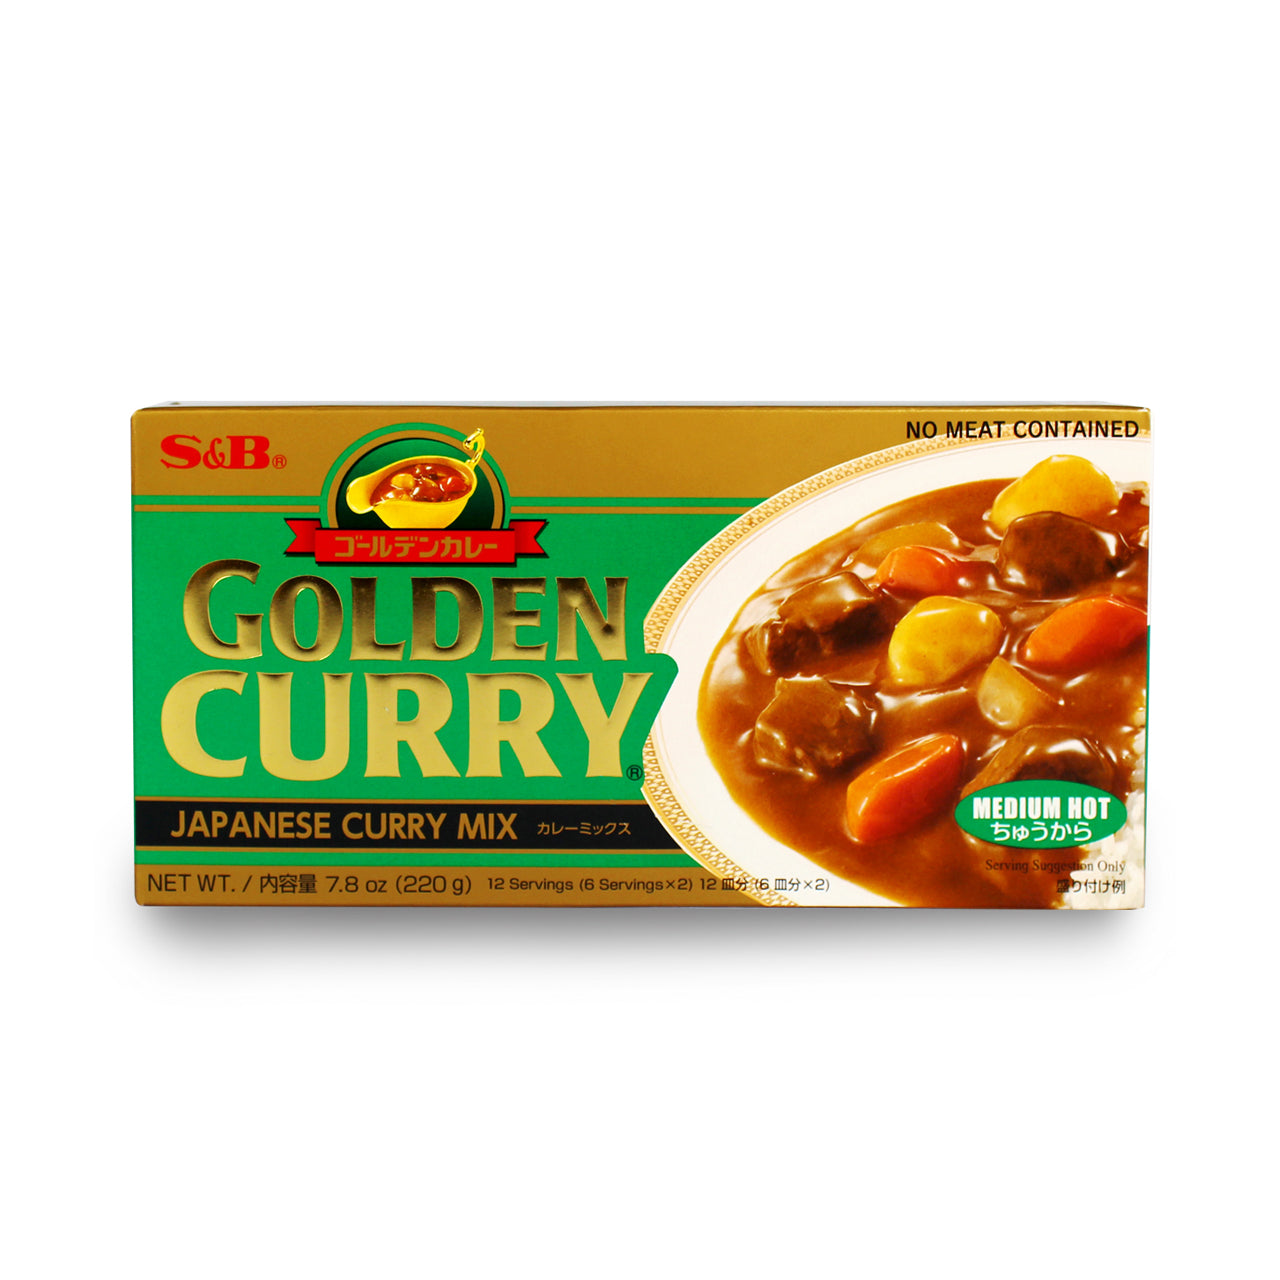 S&B Golden Curry Mix 7.8oz (220g) - MEDIUM HOT (SKU: 40683)